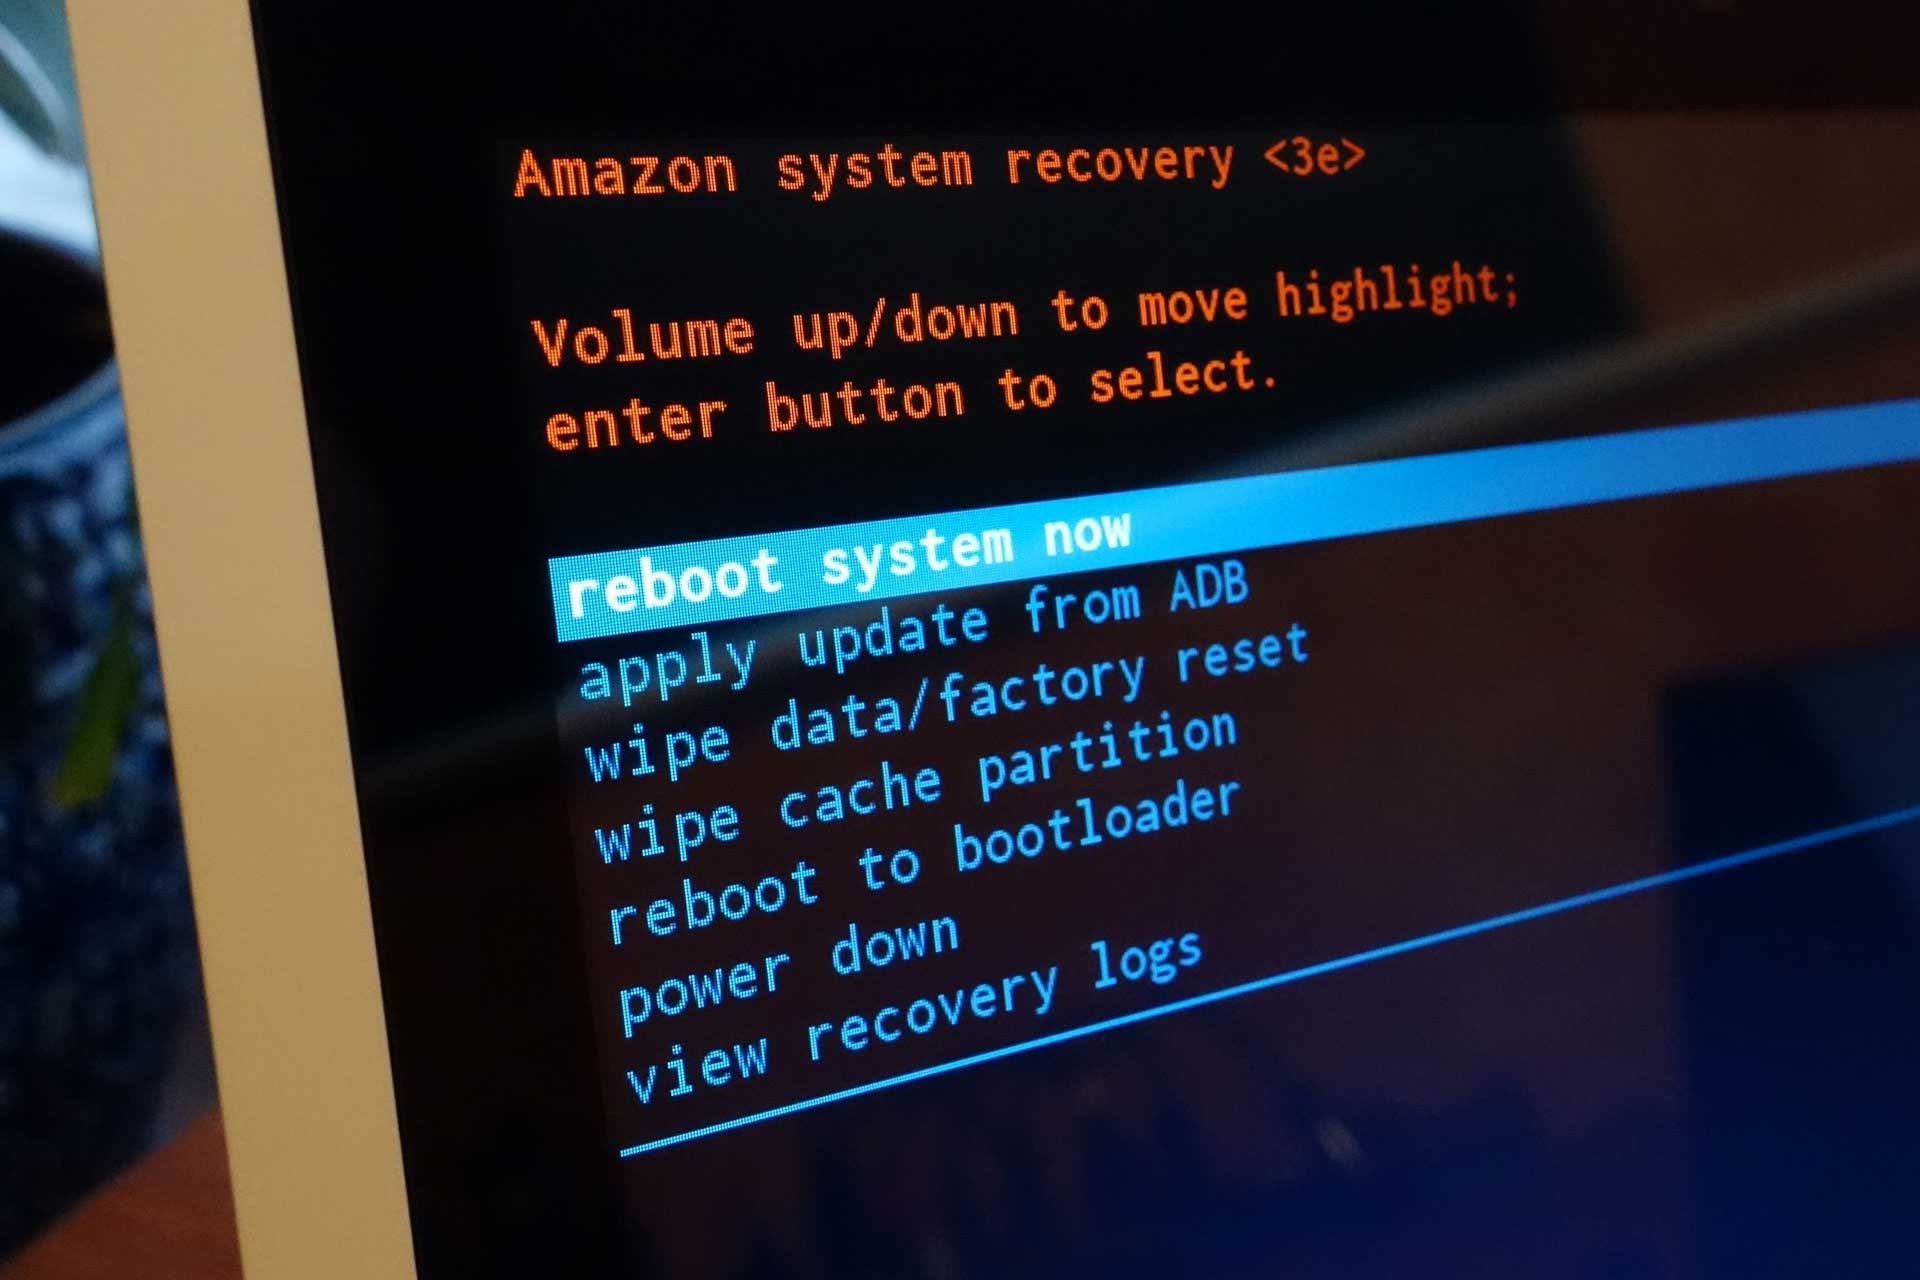 How to enter Fastboot and Recovery Mode on the Amazon Echo